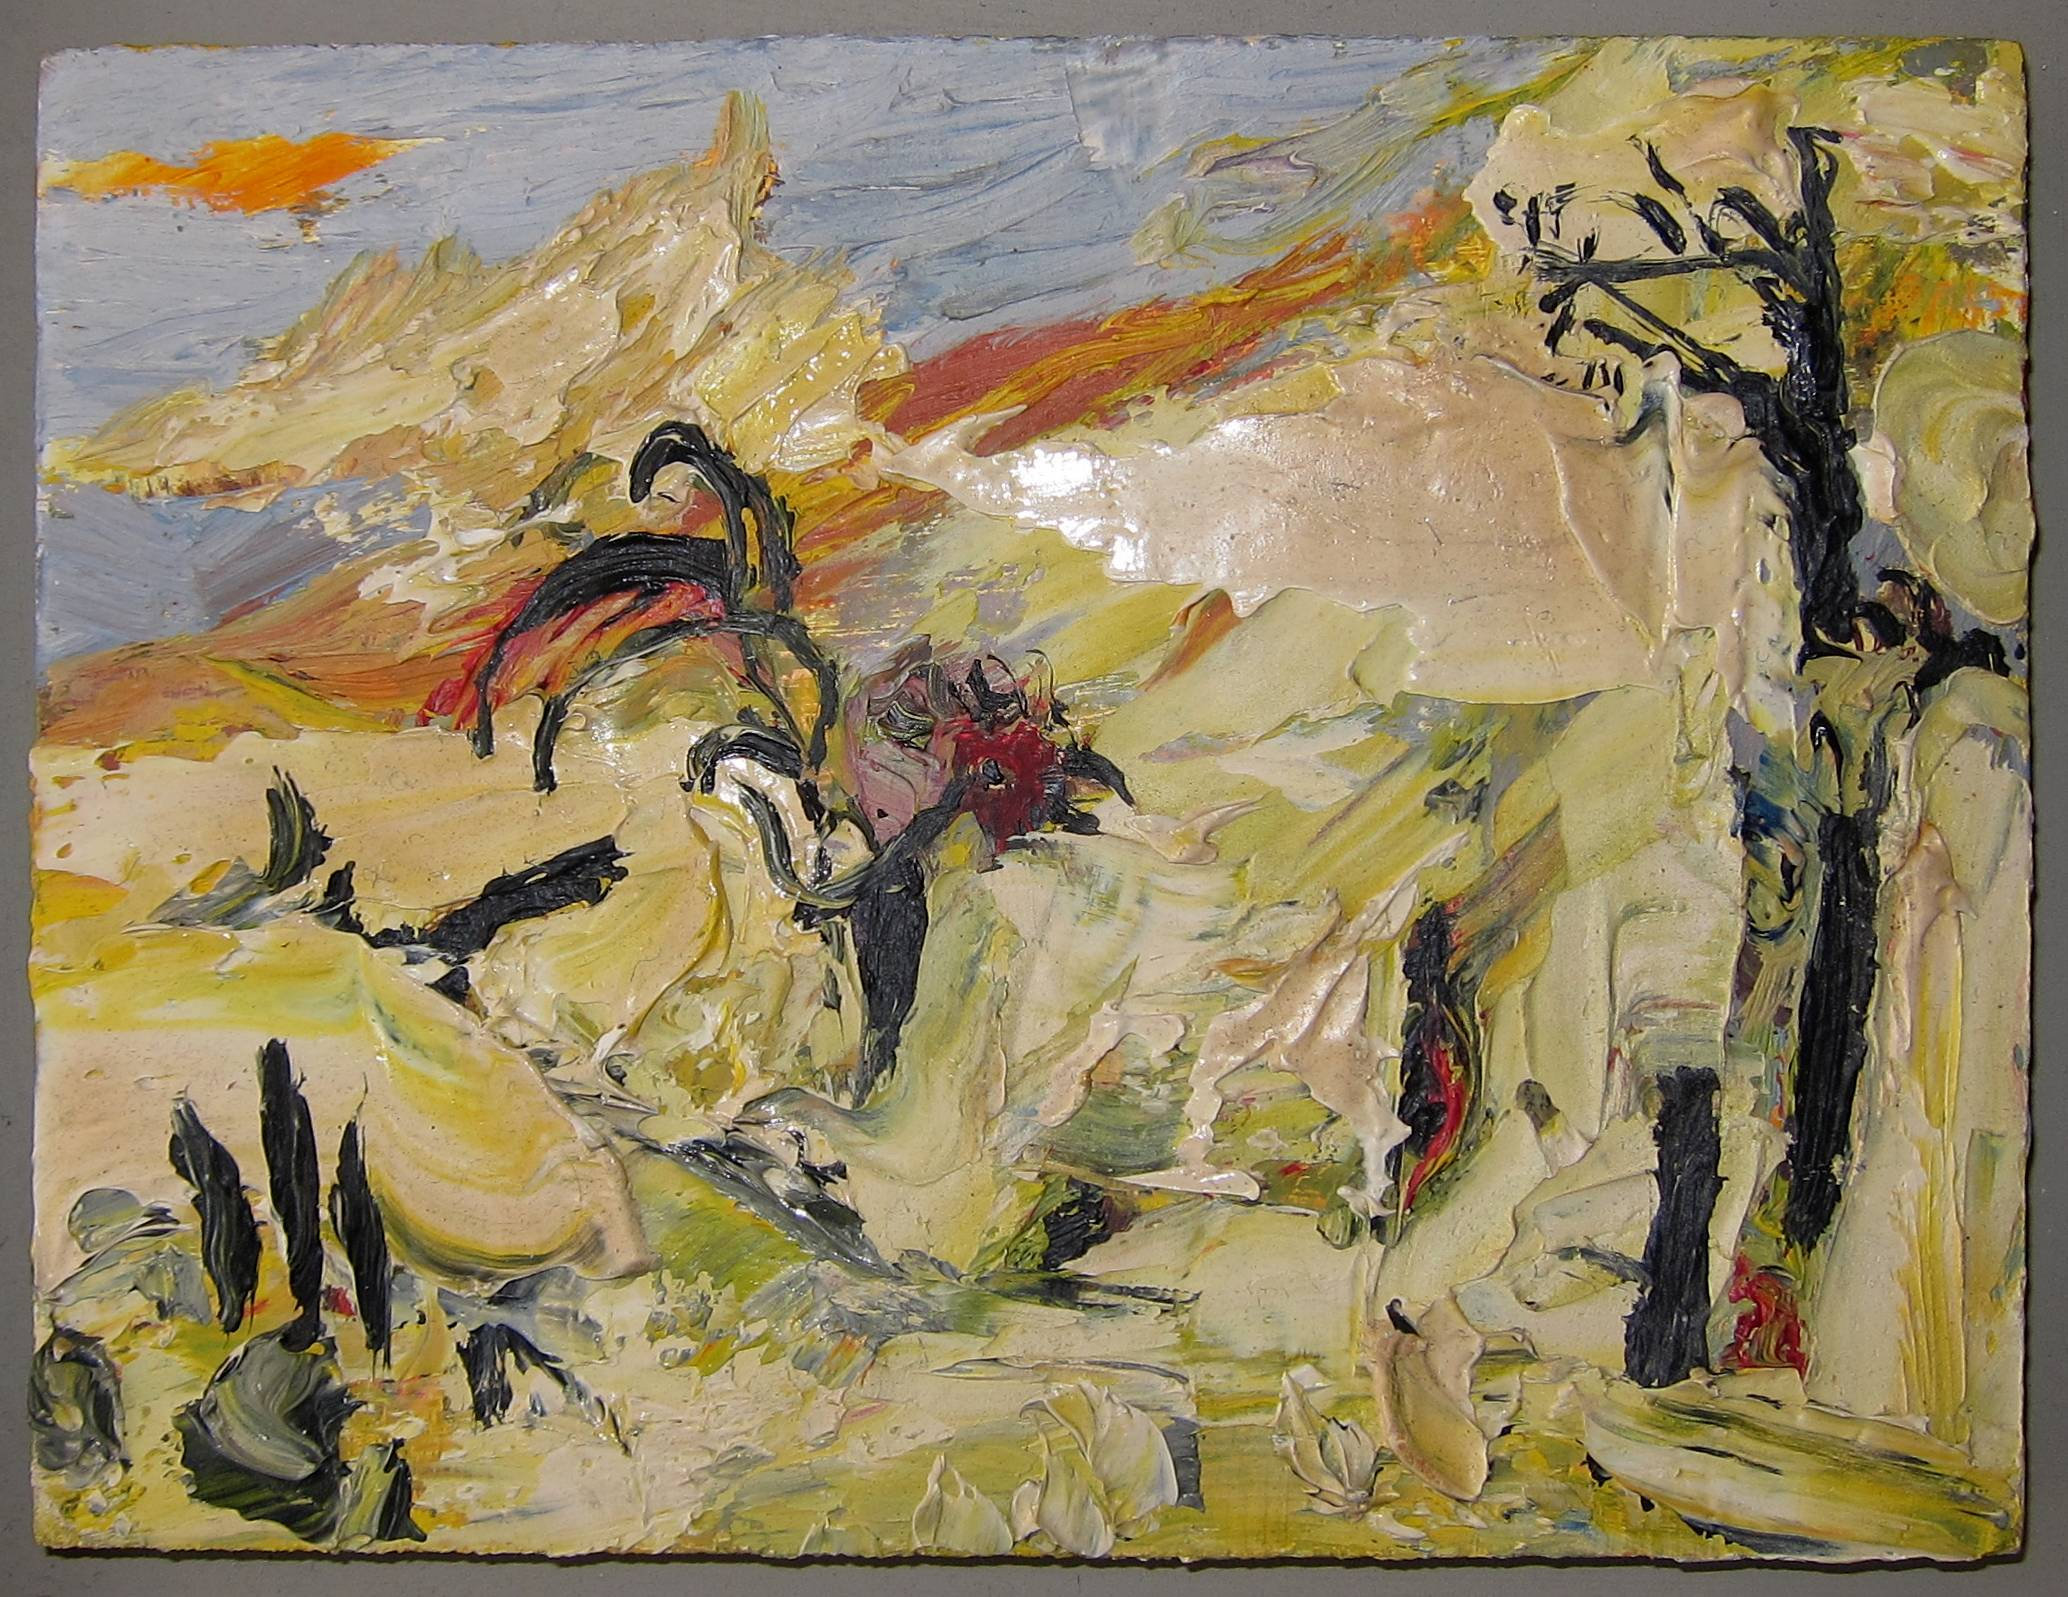 Lot 36 - MAURICE COCKRILL R.A. [1936-2013]. Yellow Landscape, 1988. oil on board. apparently signed on the